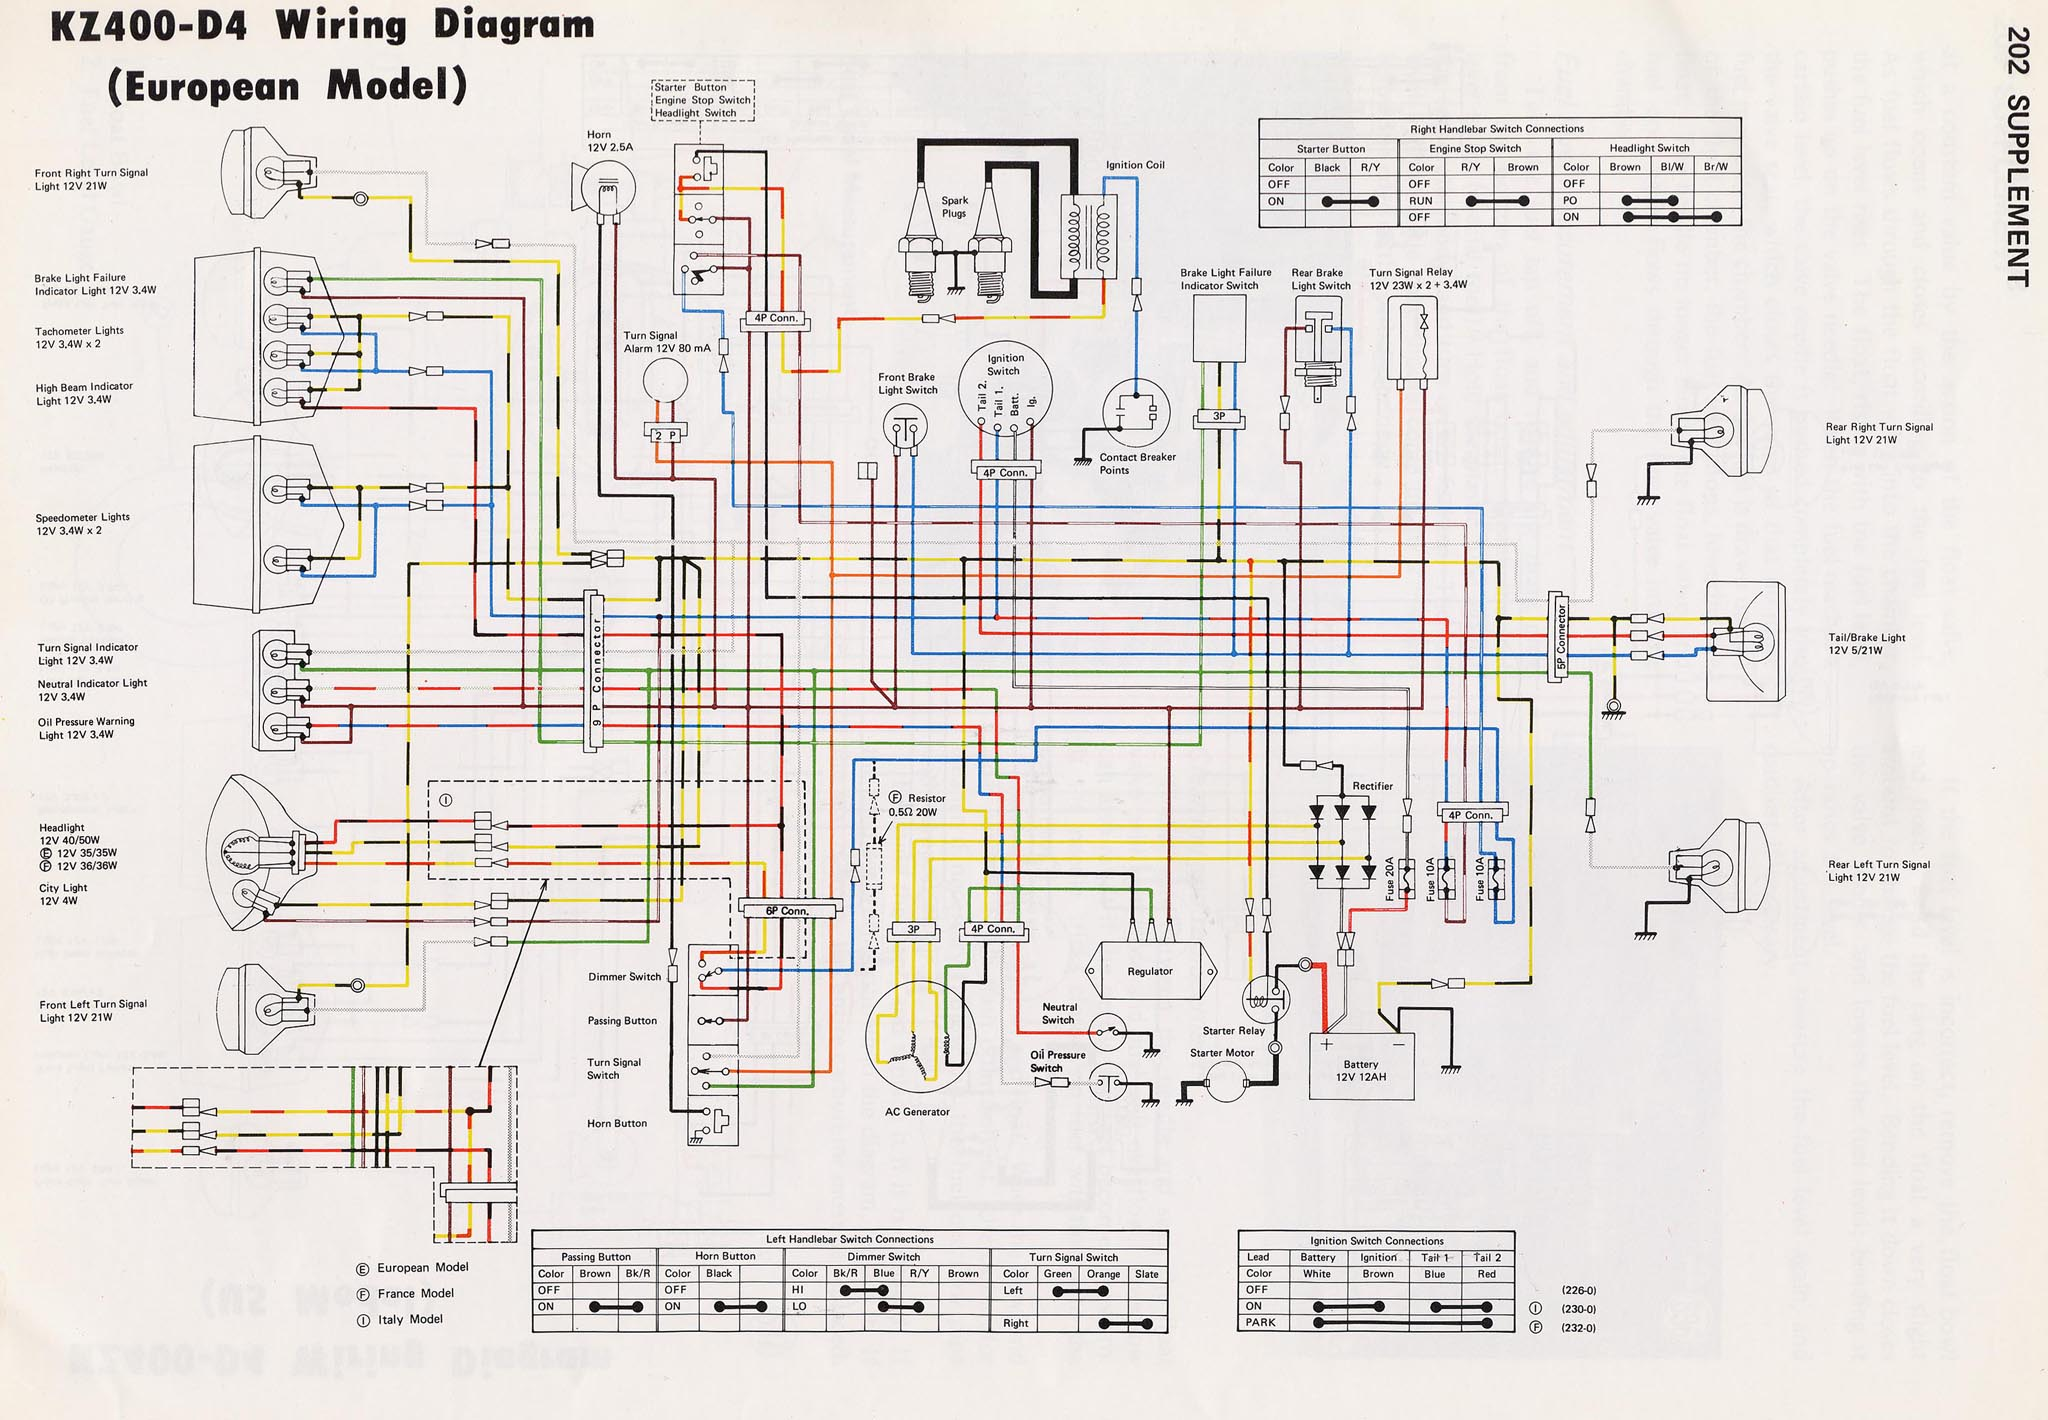 Kz400 Wiring Diagram from kz400.com